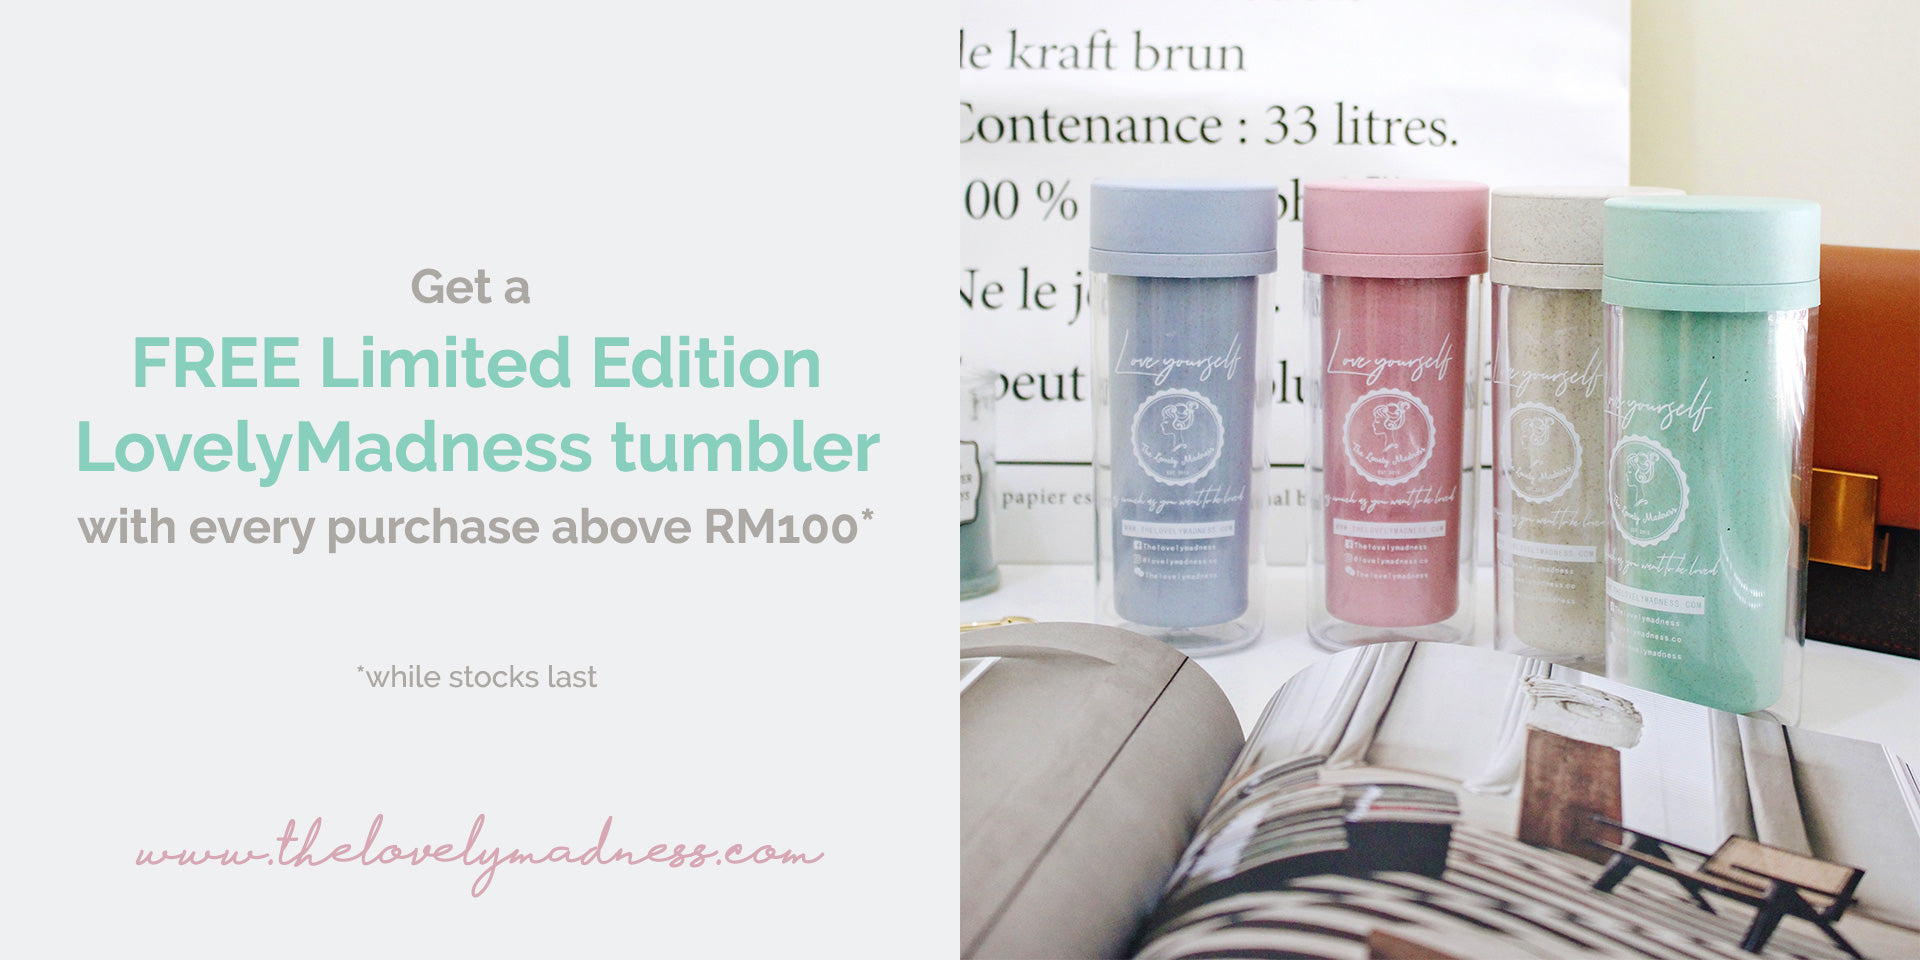 FREE Limited Edition Lovely Madness Tumbler